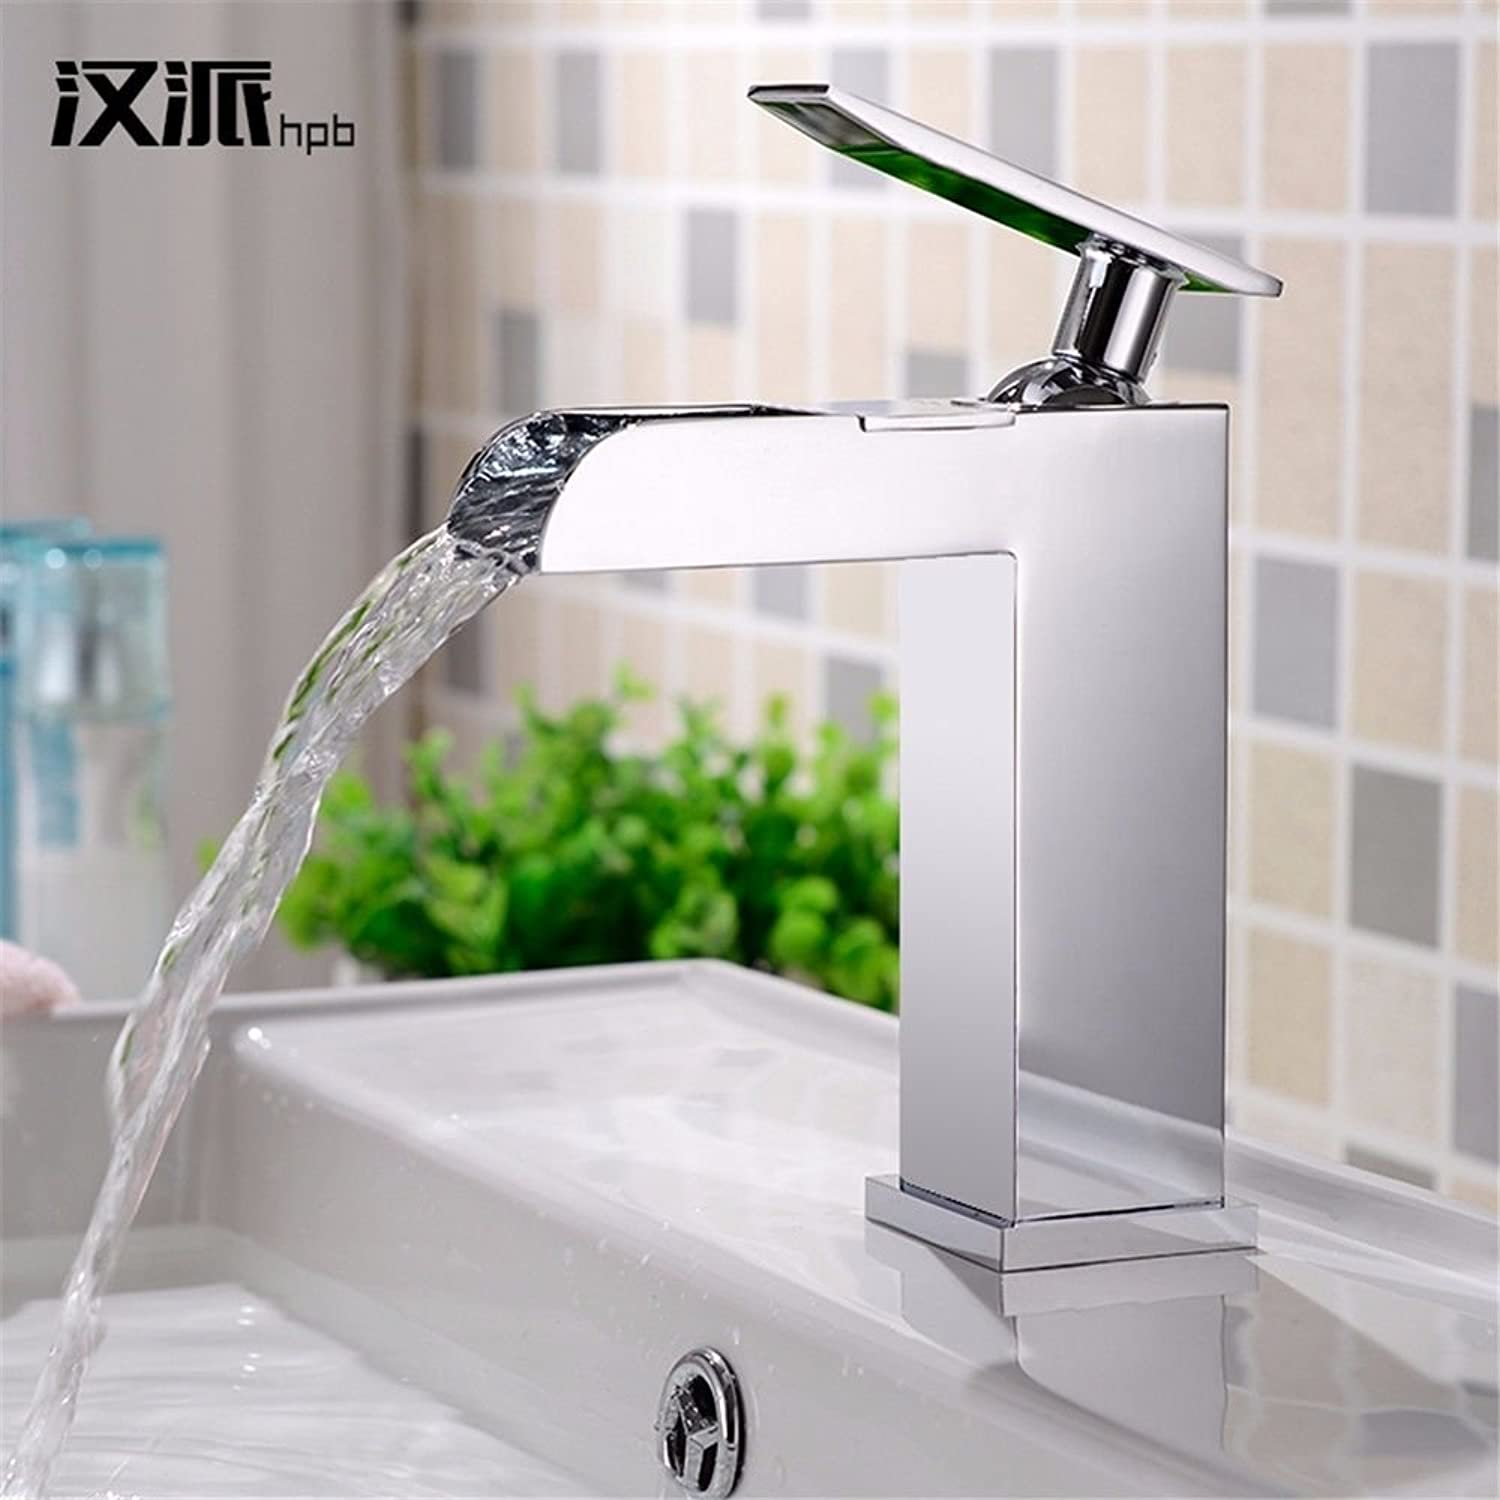 Lpophy Bathroom Sink Mixer Taps Faucet Bath Waterfall Cold and Hot Water Tap for Washroom Bathroom and Kitchen Copper Hot and Cold Waterfall